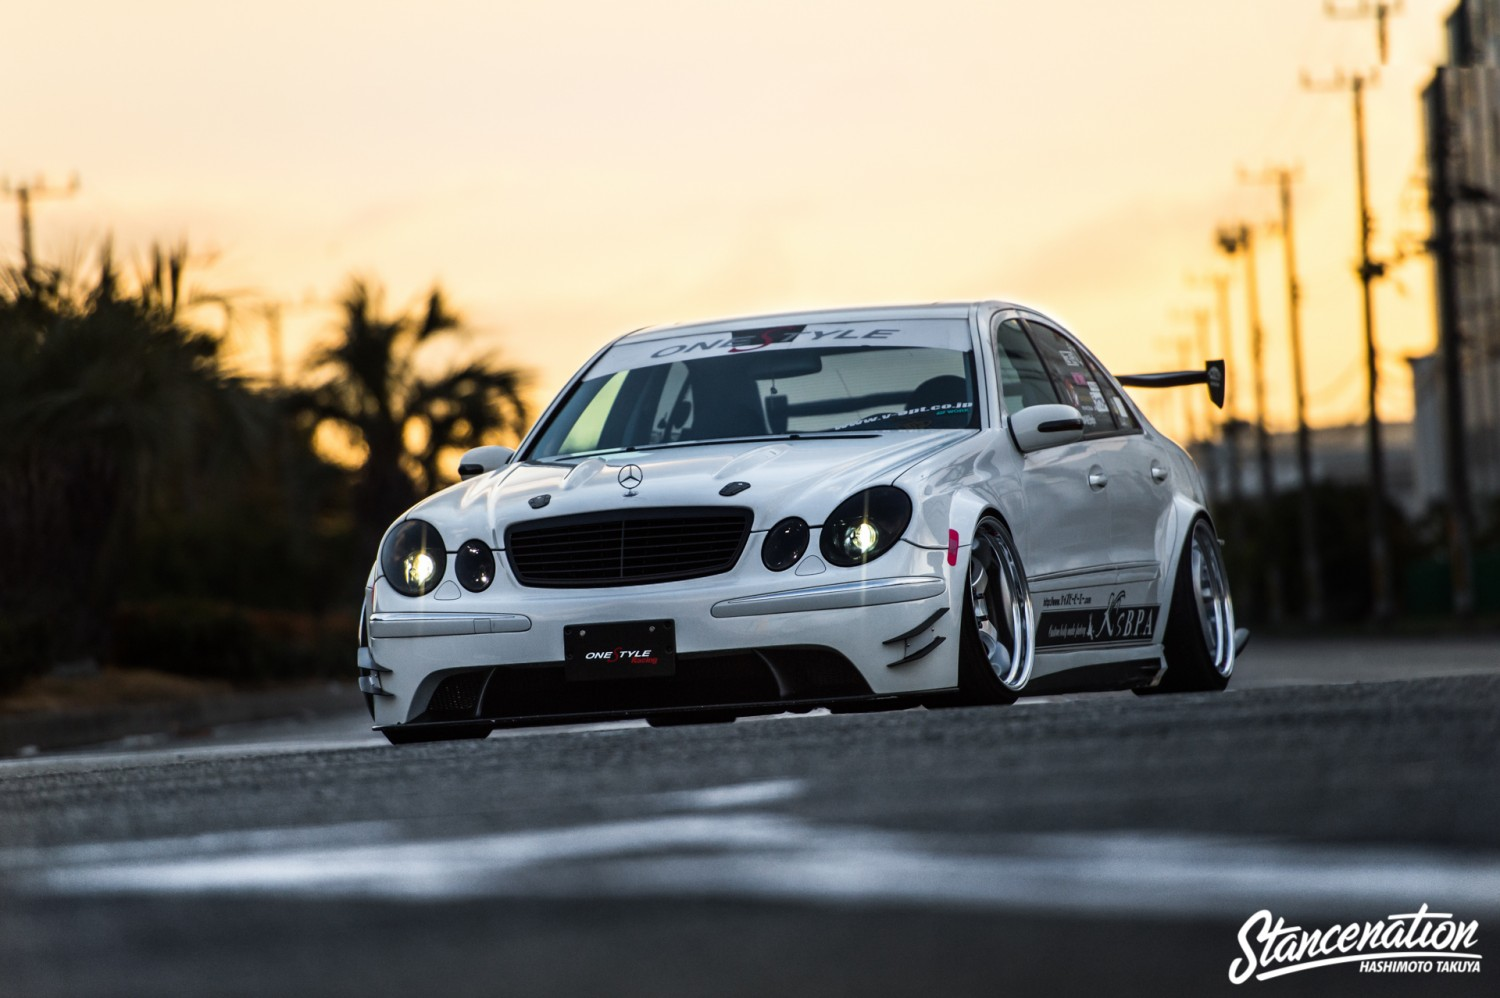 S Class Coupe >> Style is Everything // Toshiki Omura's W211 Mercedes Benz | StanceNation™ // Form > Function